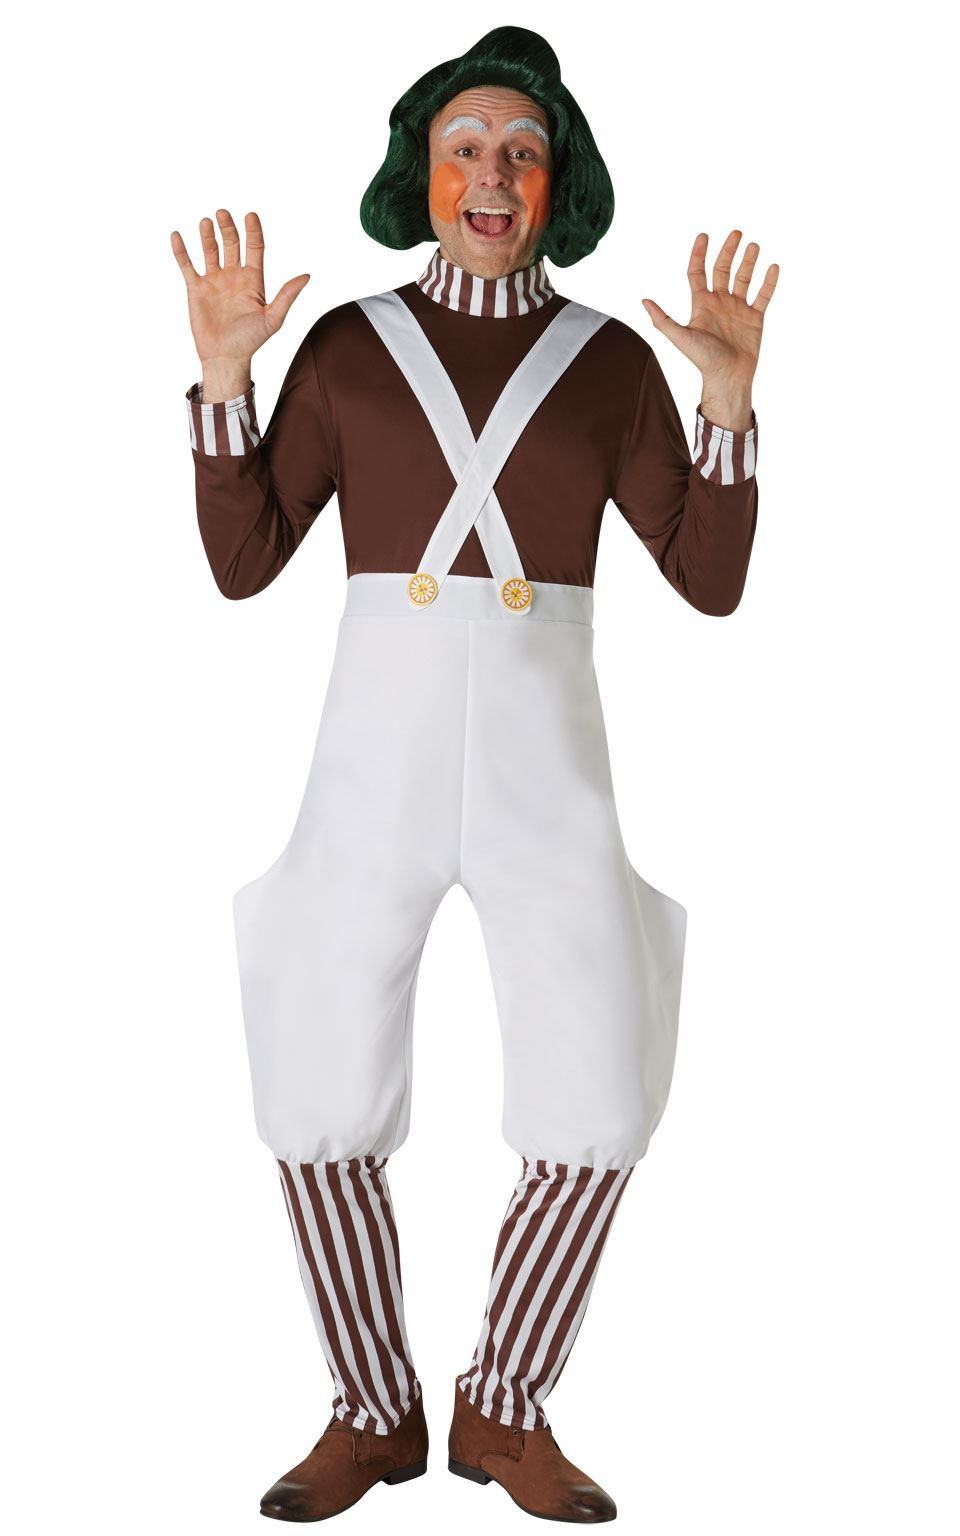 Oompa Lumpa Green Wig,Charlie and the Chocolate Factory,Fancy Dress,Halloween